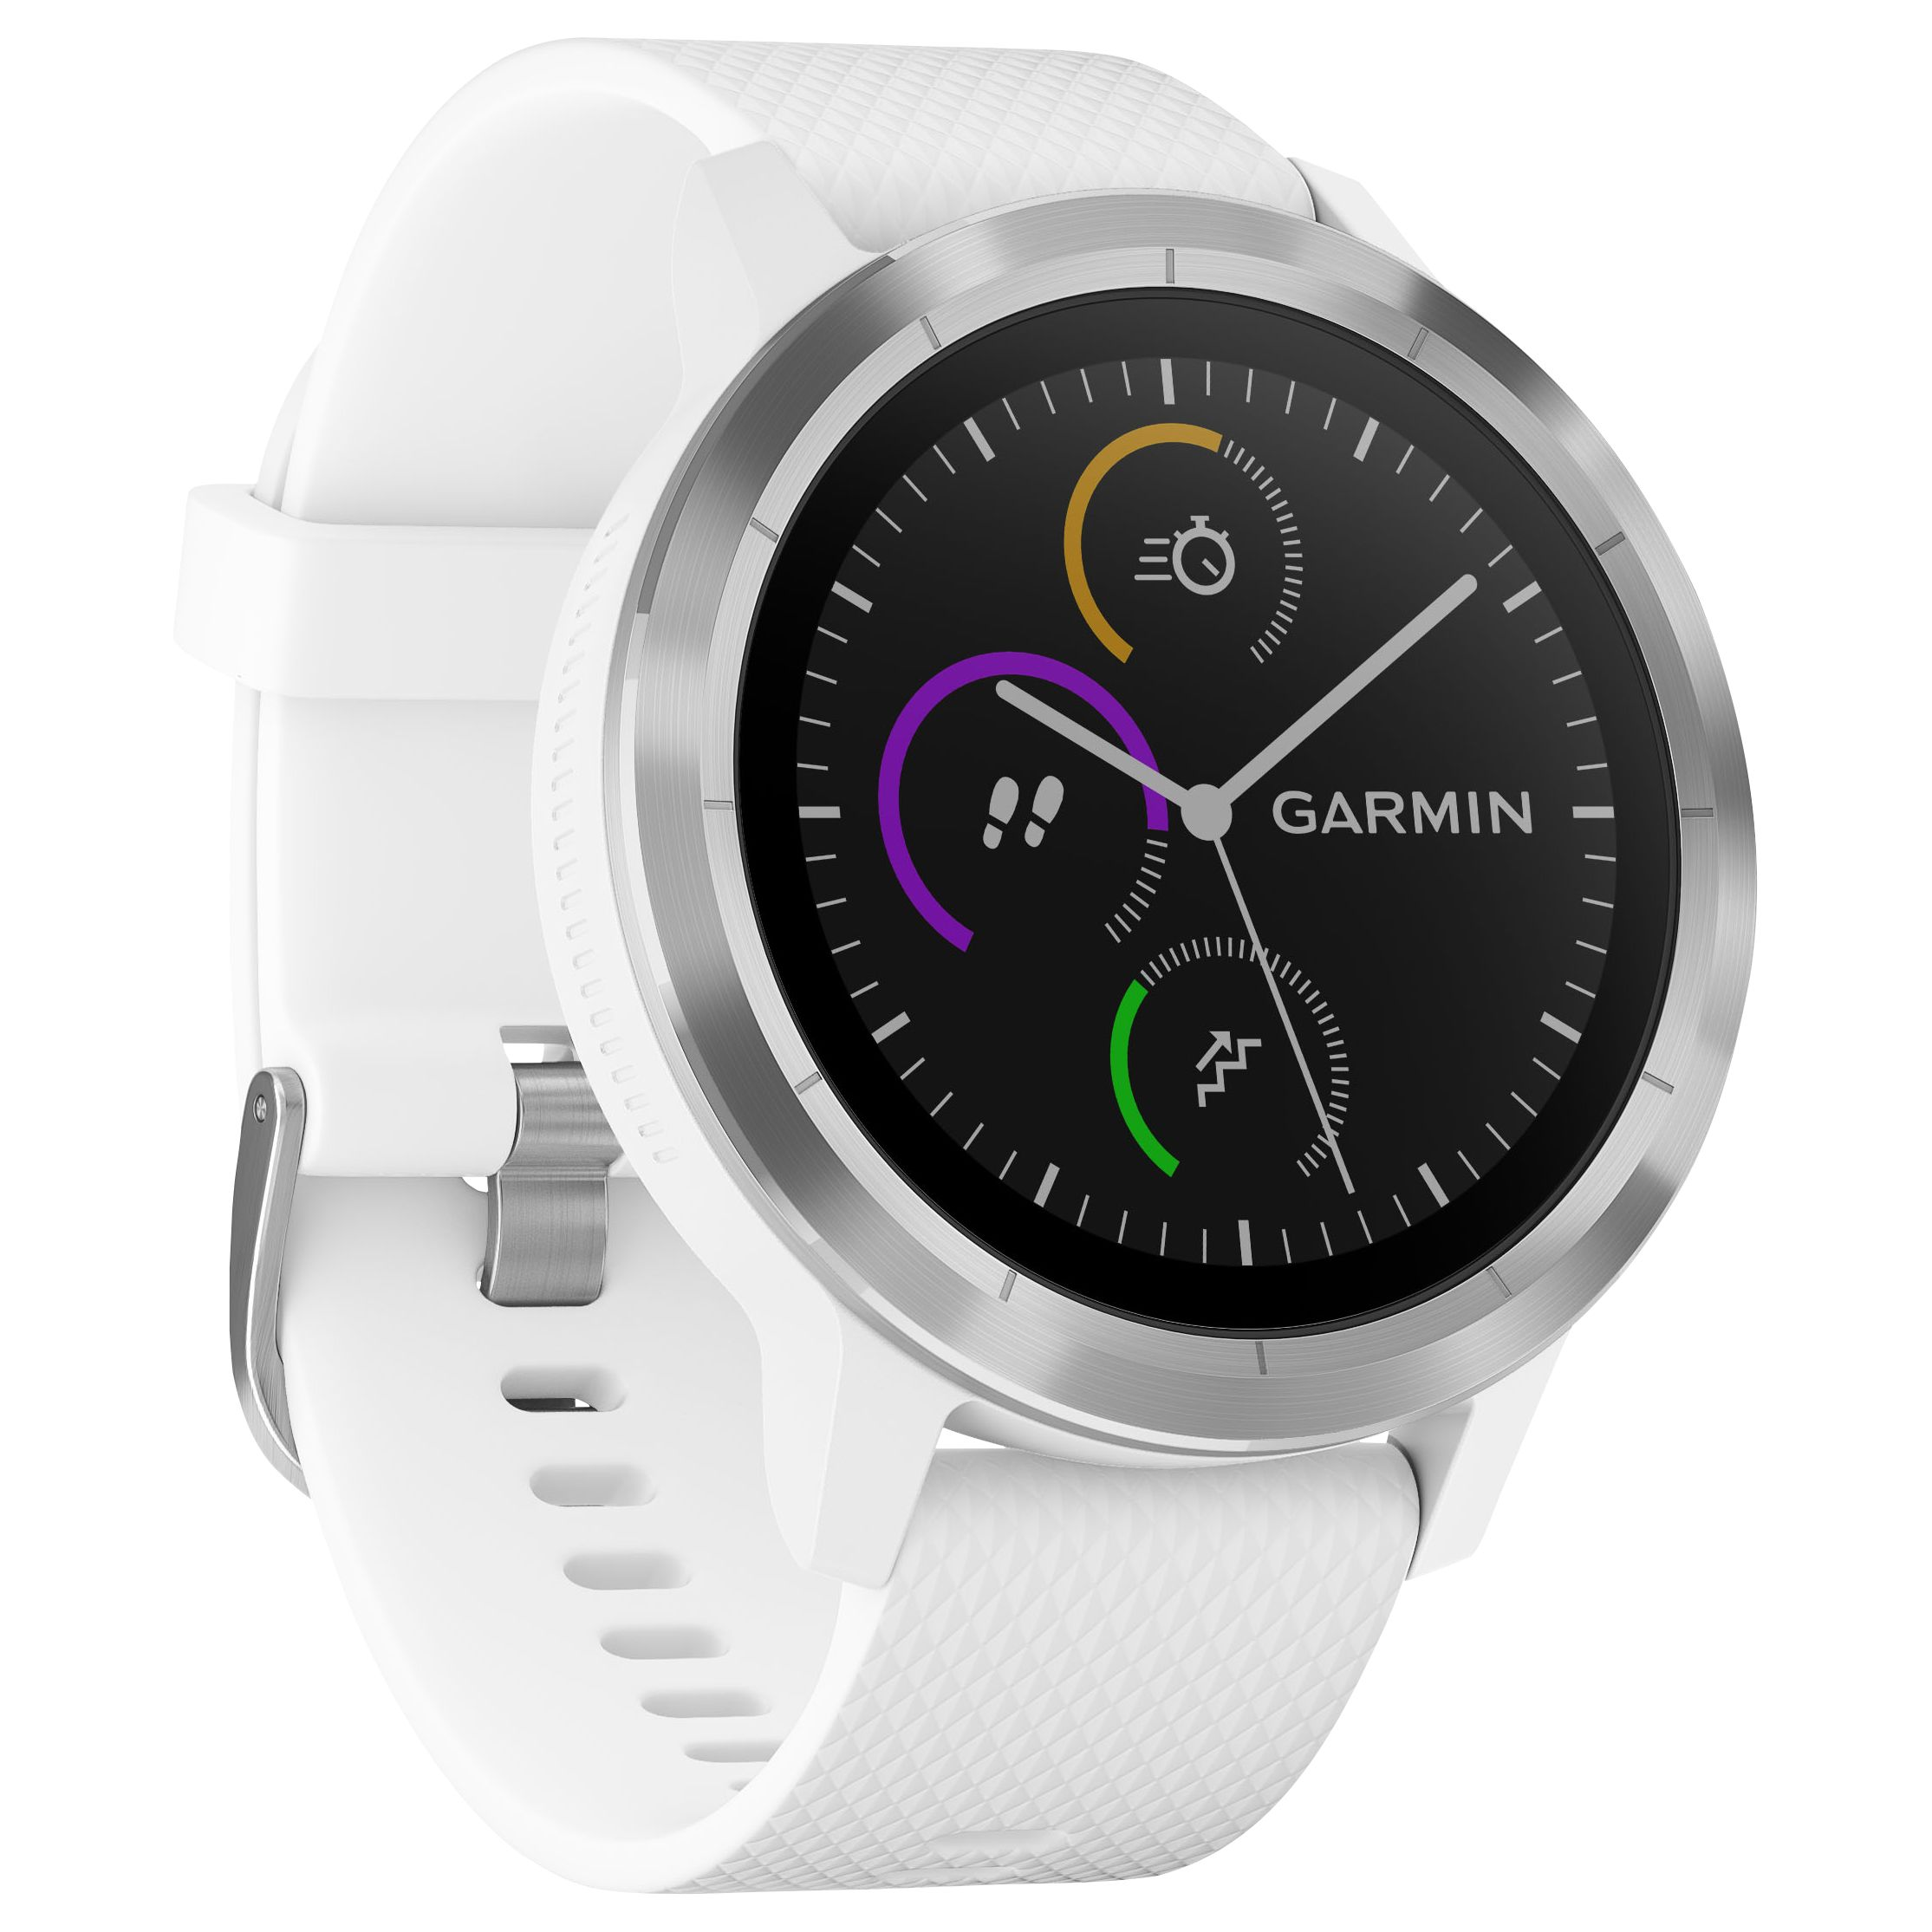 Garmin Garmin Vivoactive 3 GPS Smartwatch with Contactless Payment and HR